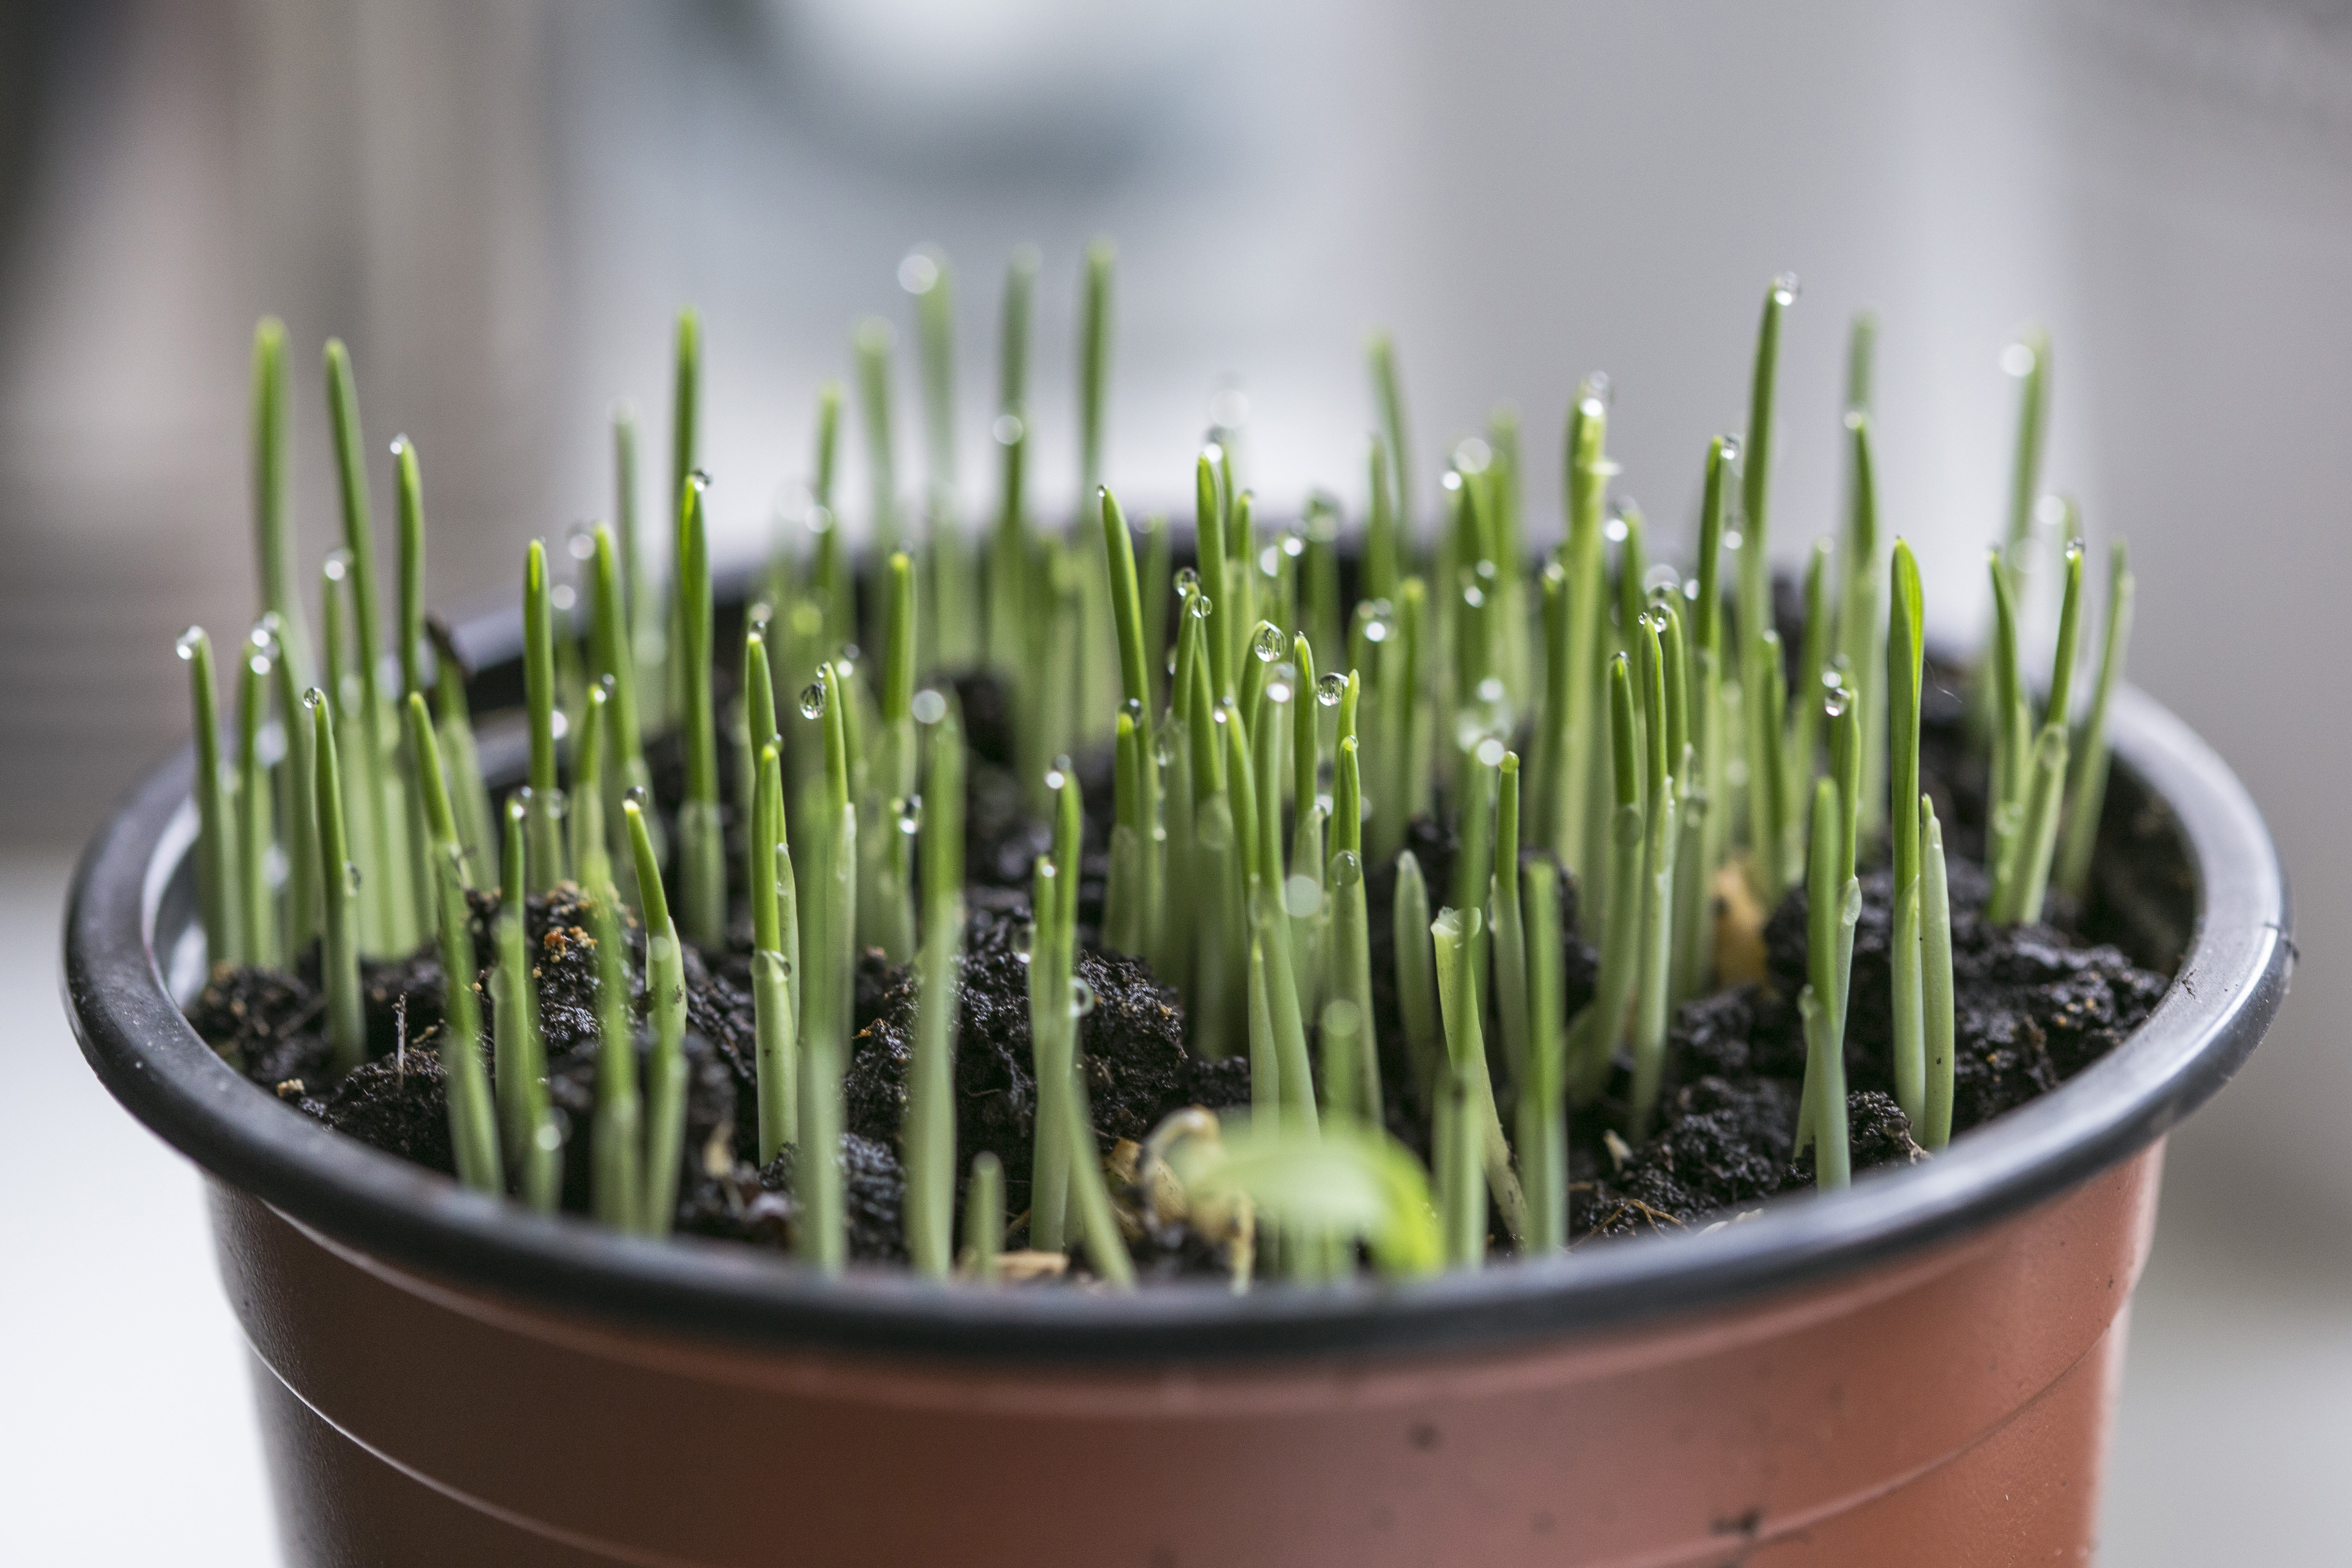 Biodegradable Plastic Makes Planters More Sustainable.jpg